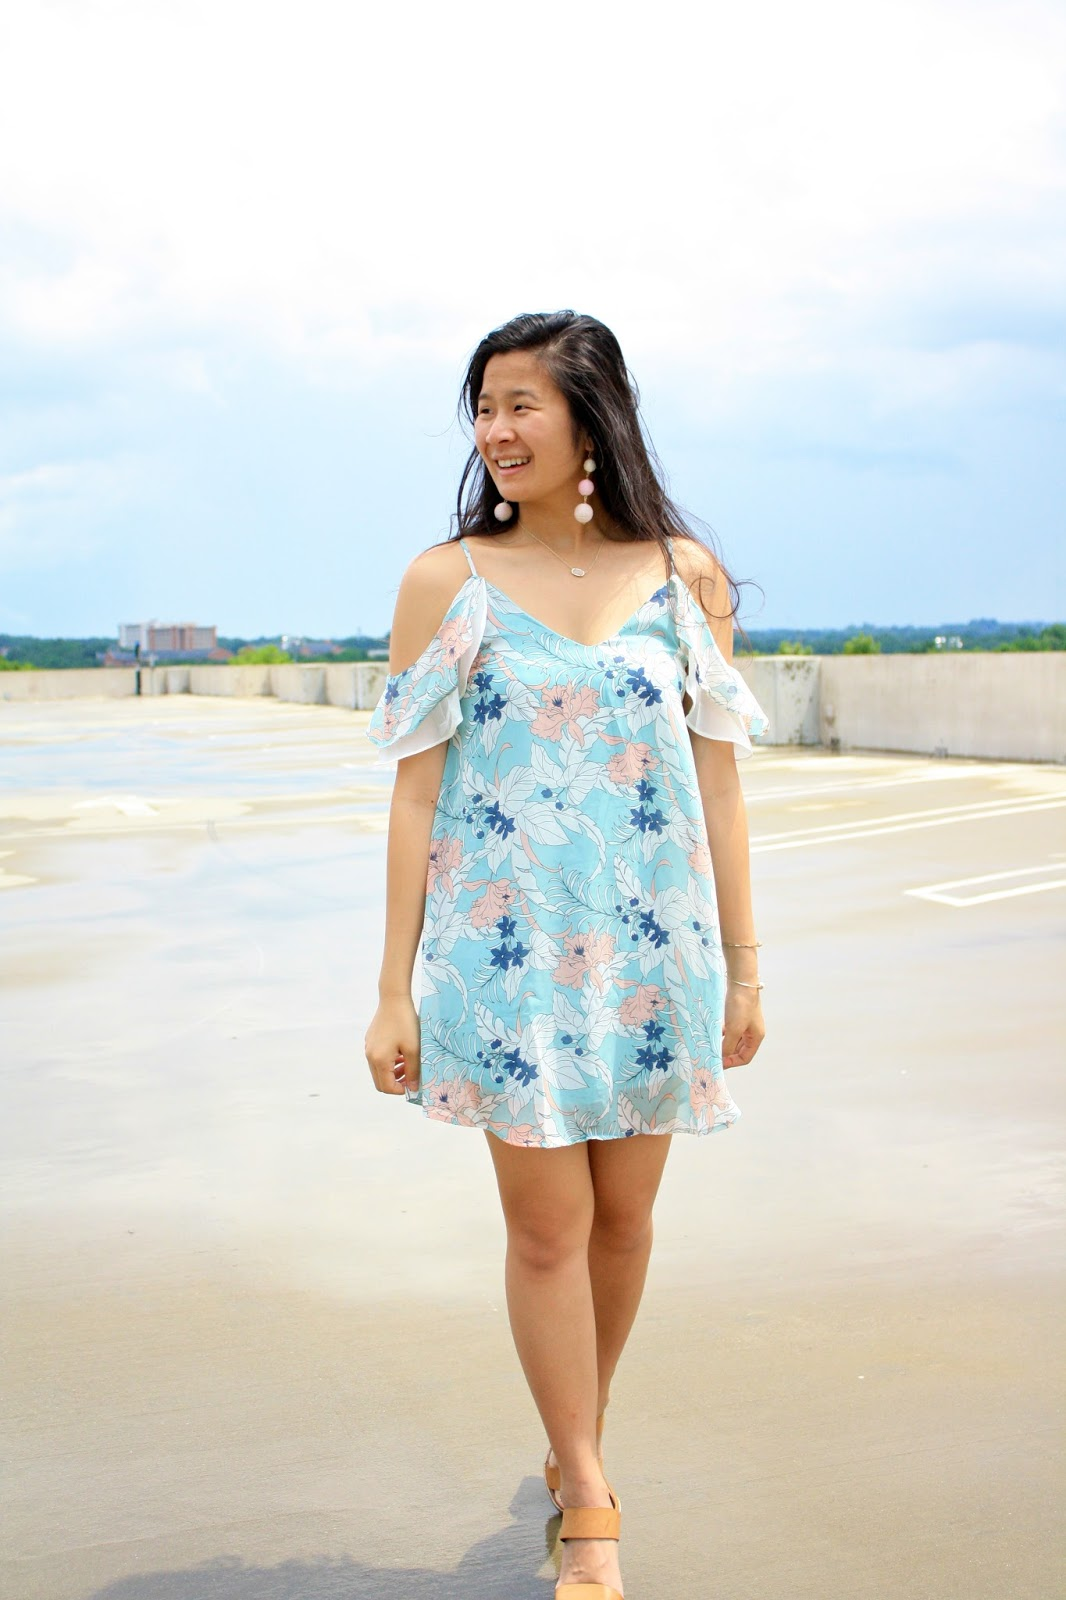 Styling a pastel dress